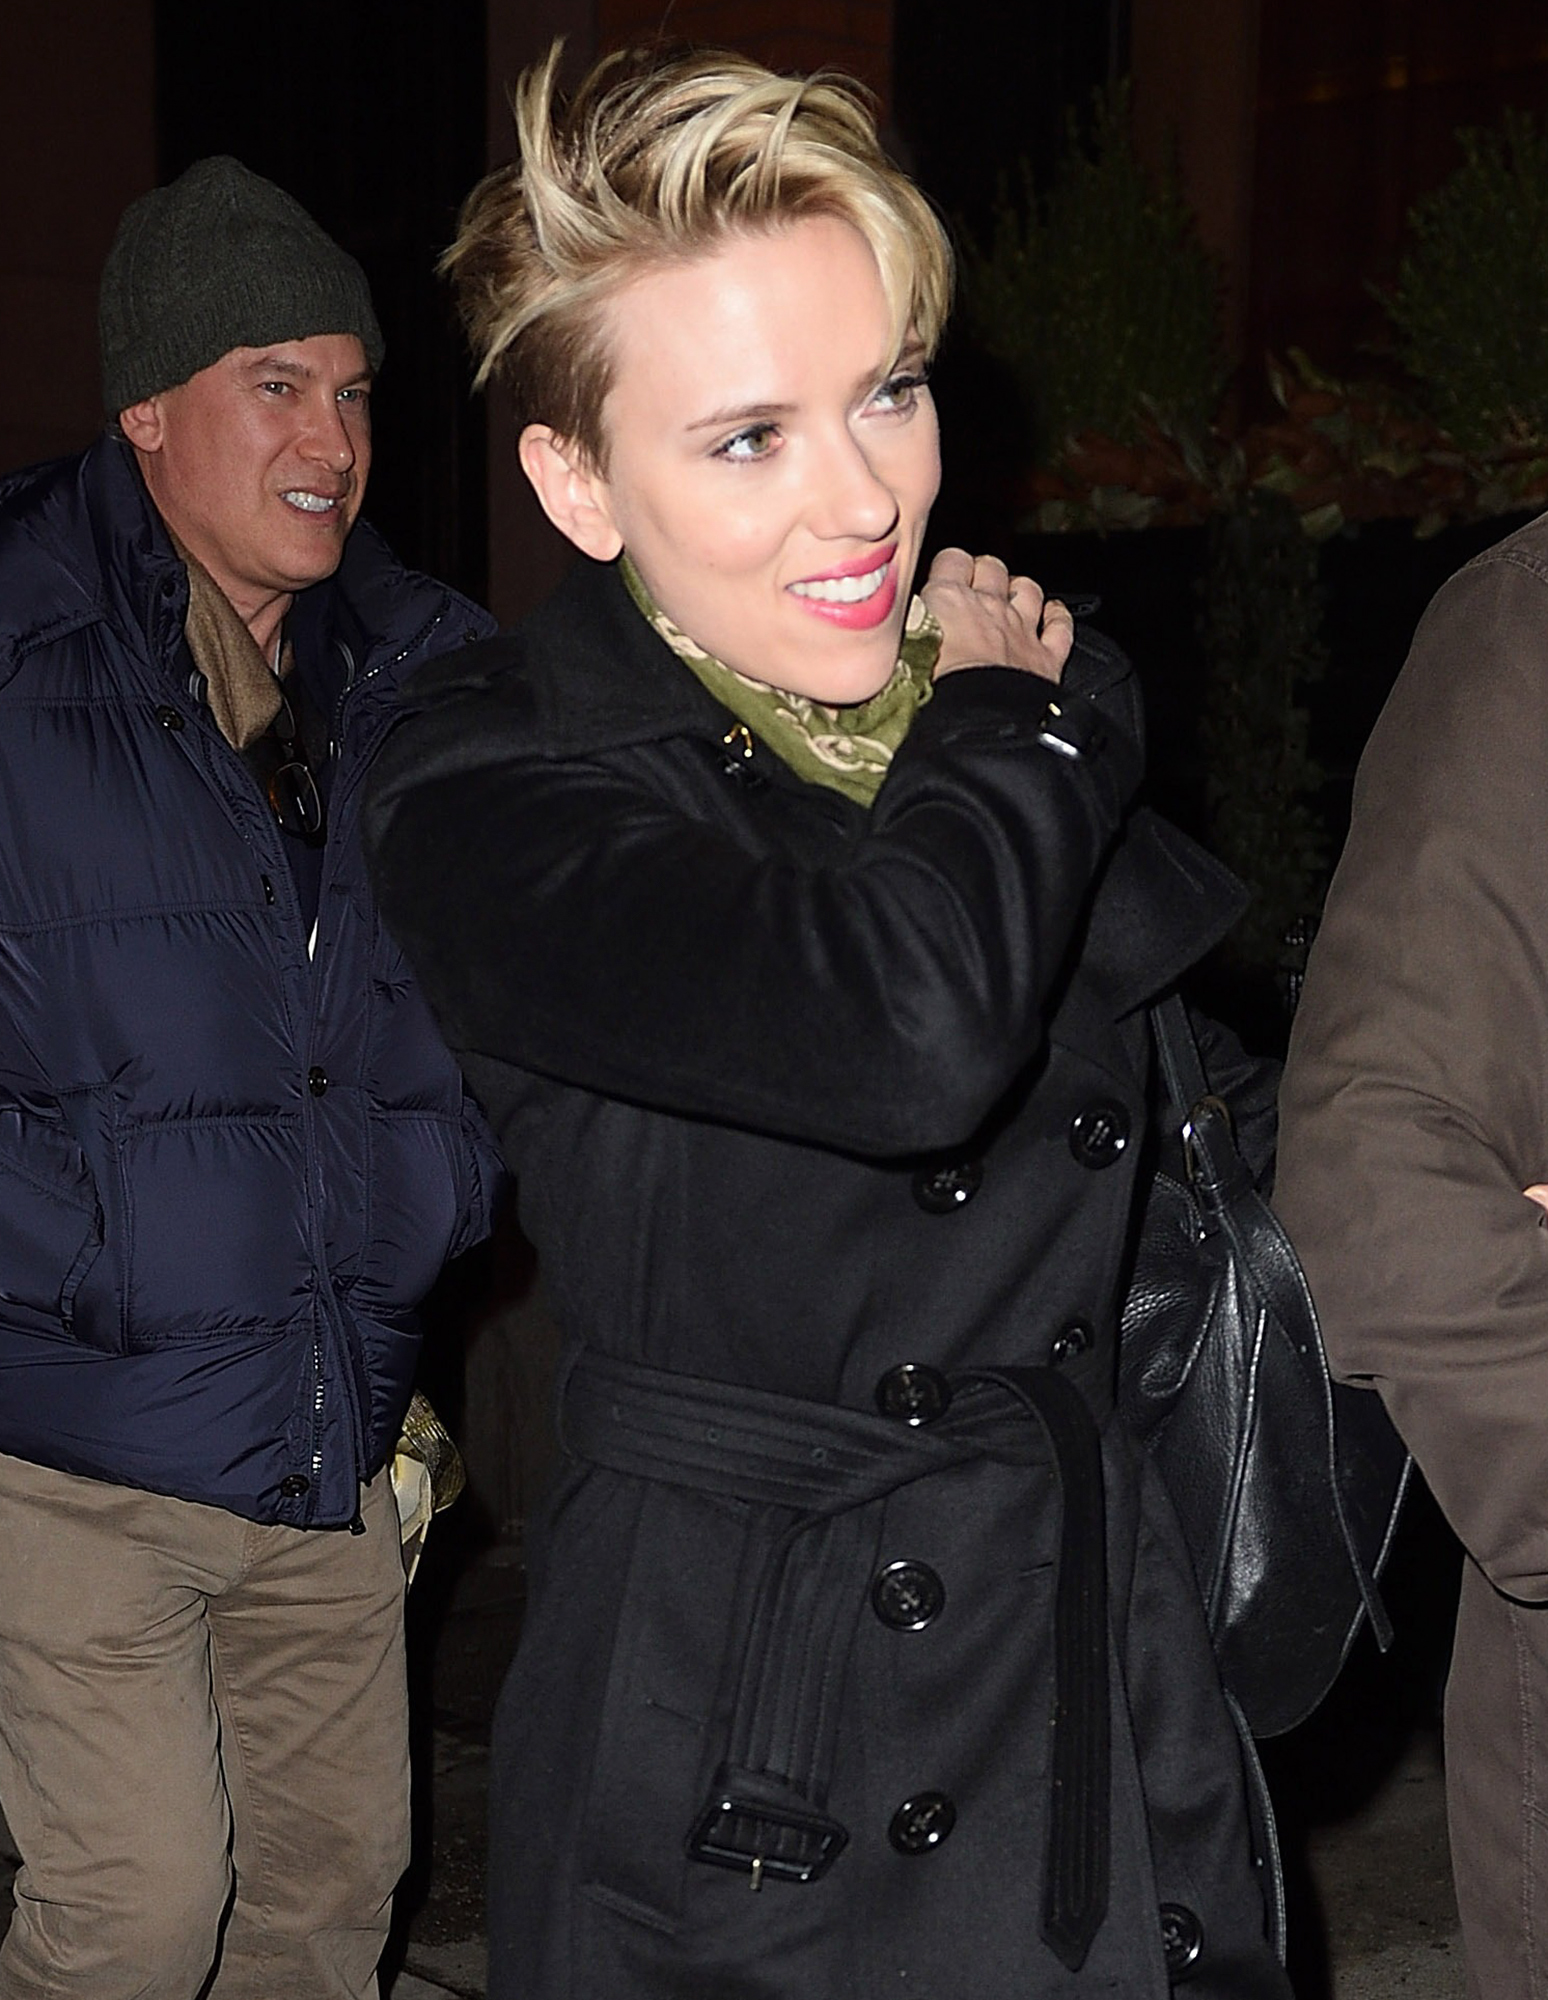 Scarlett Johansson arrives at the SNL party in NYC.